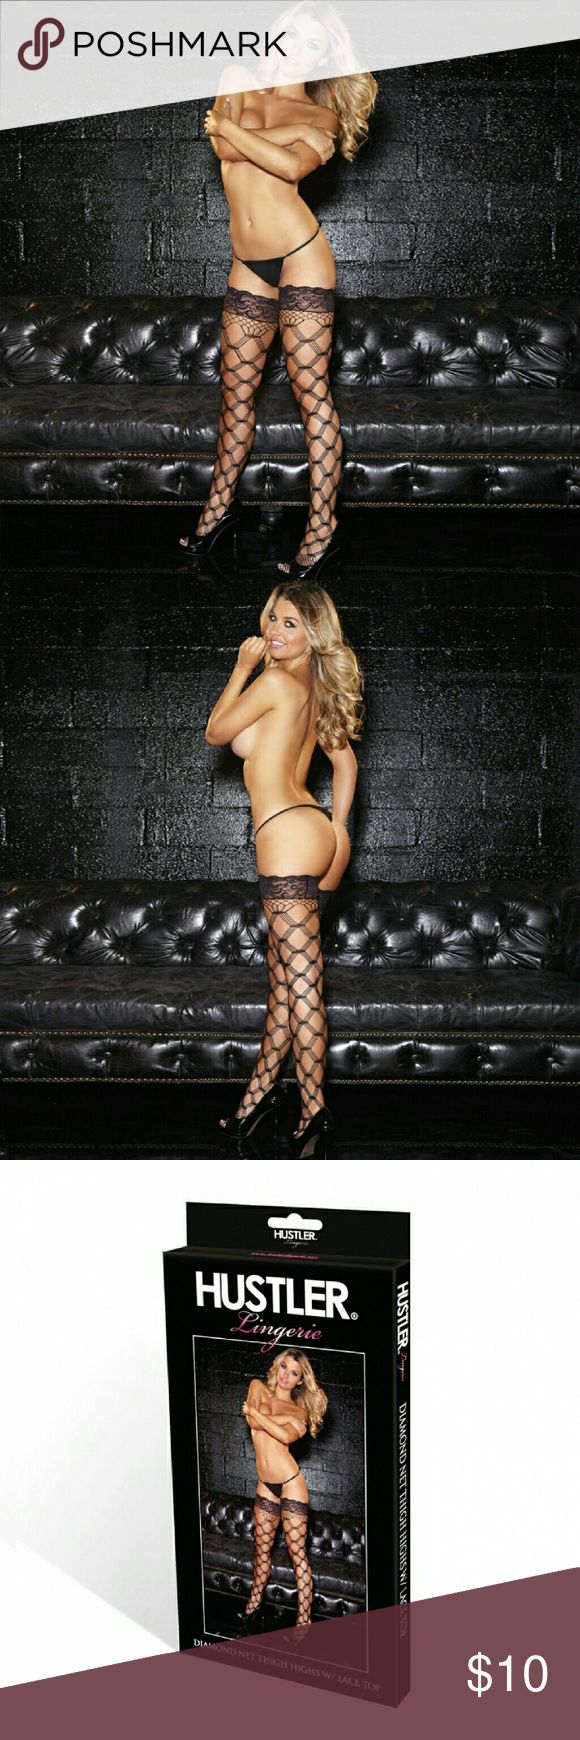 Hustler Lingeries Lace Top Diamondnet Thigh High Get the ultimate hustler look in these diamond net thigh high with lace top. Featuring the always sexy diamond pattern, these thigh high stocking are a must have for every woman. One size fit most .(fit up to size 10) 100% Nylon GET IT WHILE IT LAST!  FREE MYSTERY GIFT WHEN ORDER IS 20$ OR MORE !!!!! Hustler Lingeries Accessories Hosiery & Socks